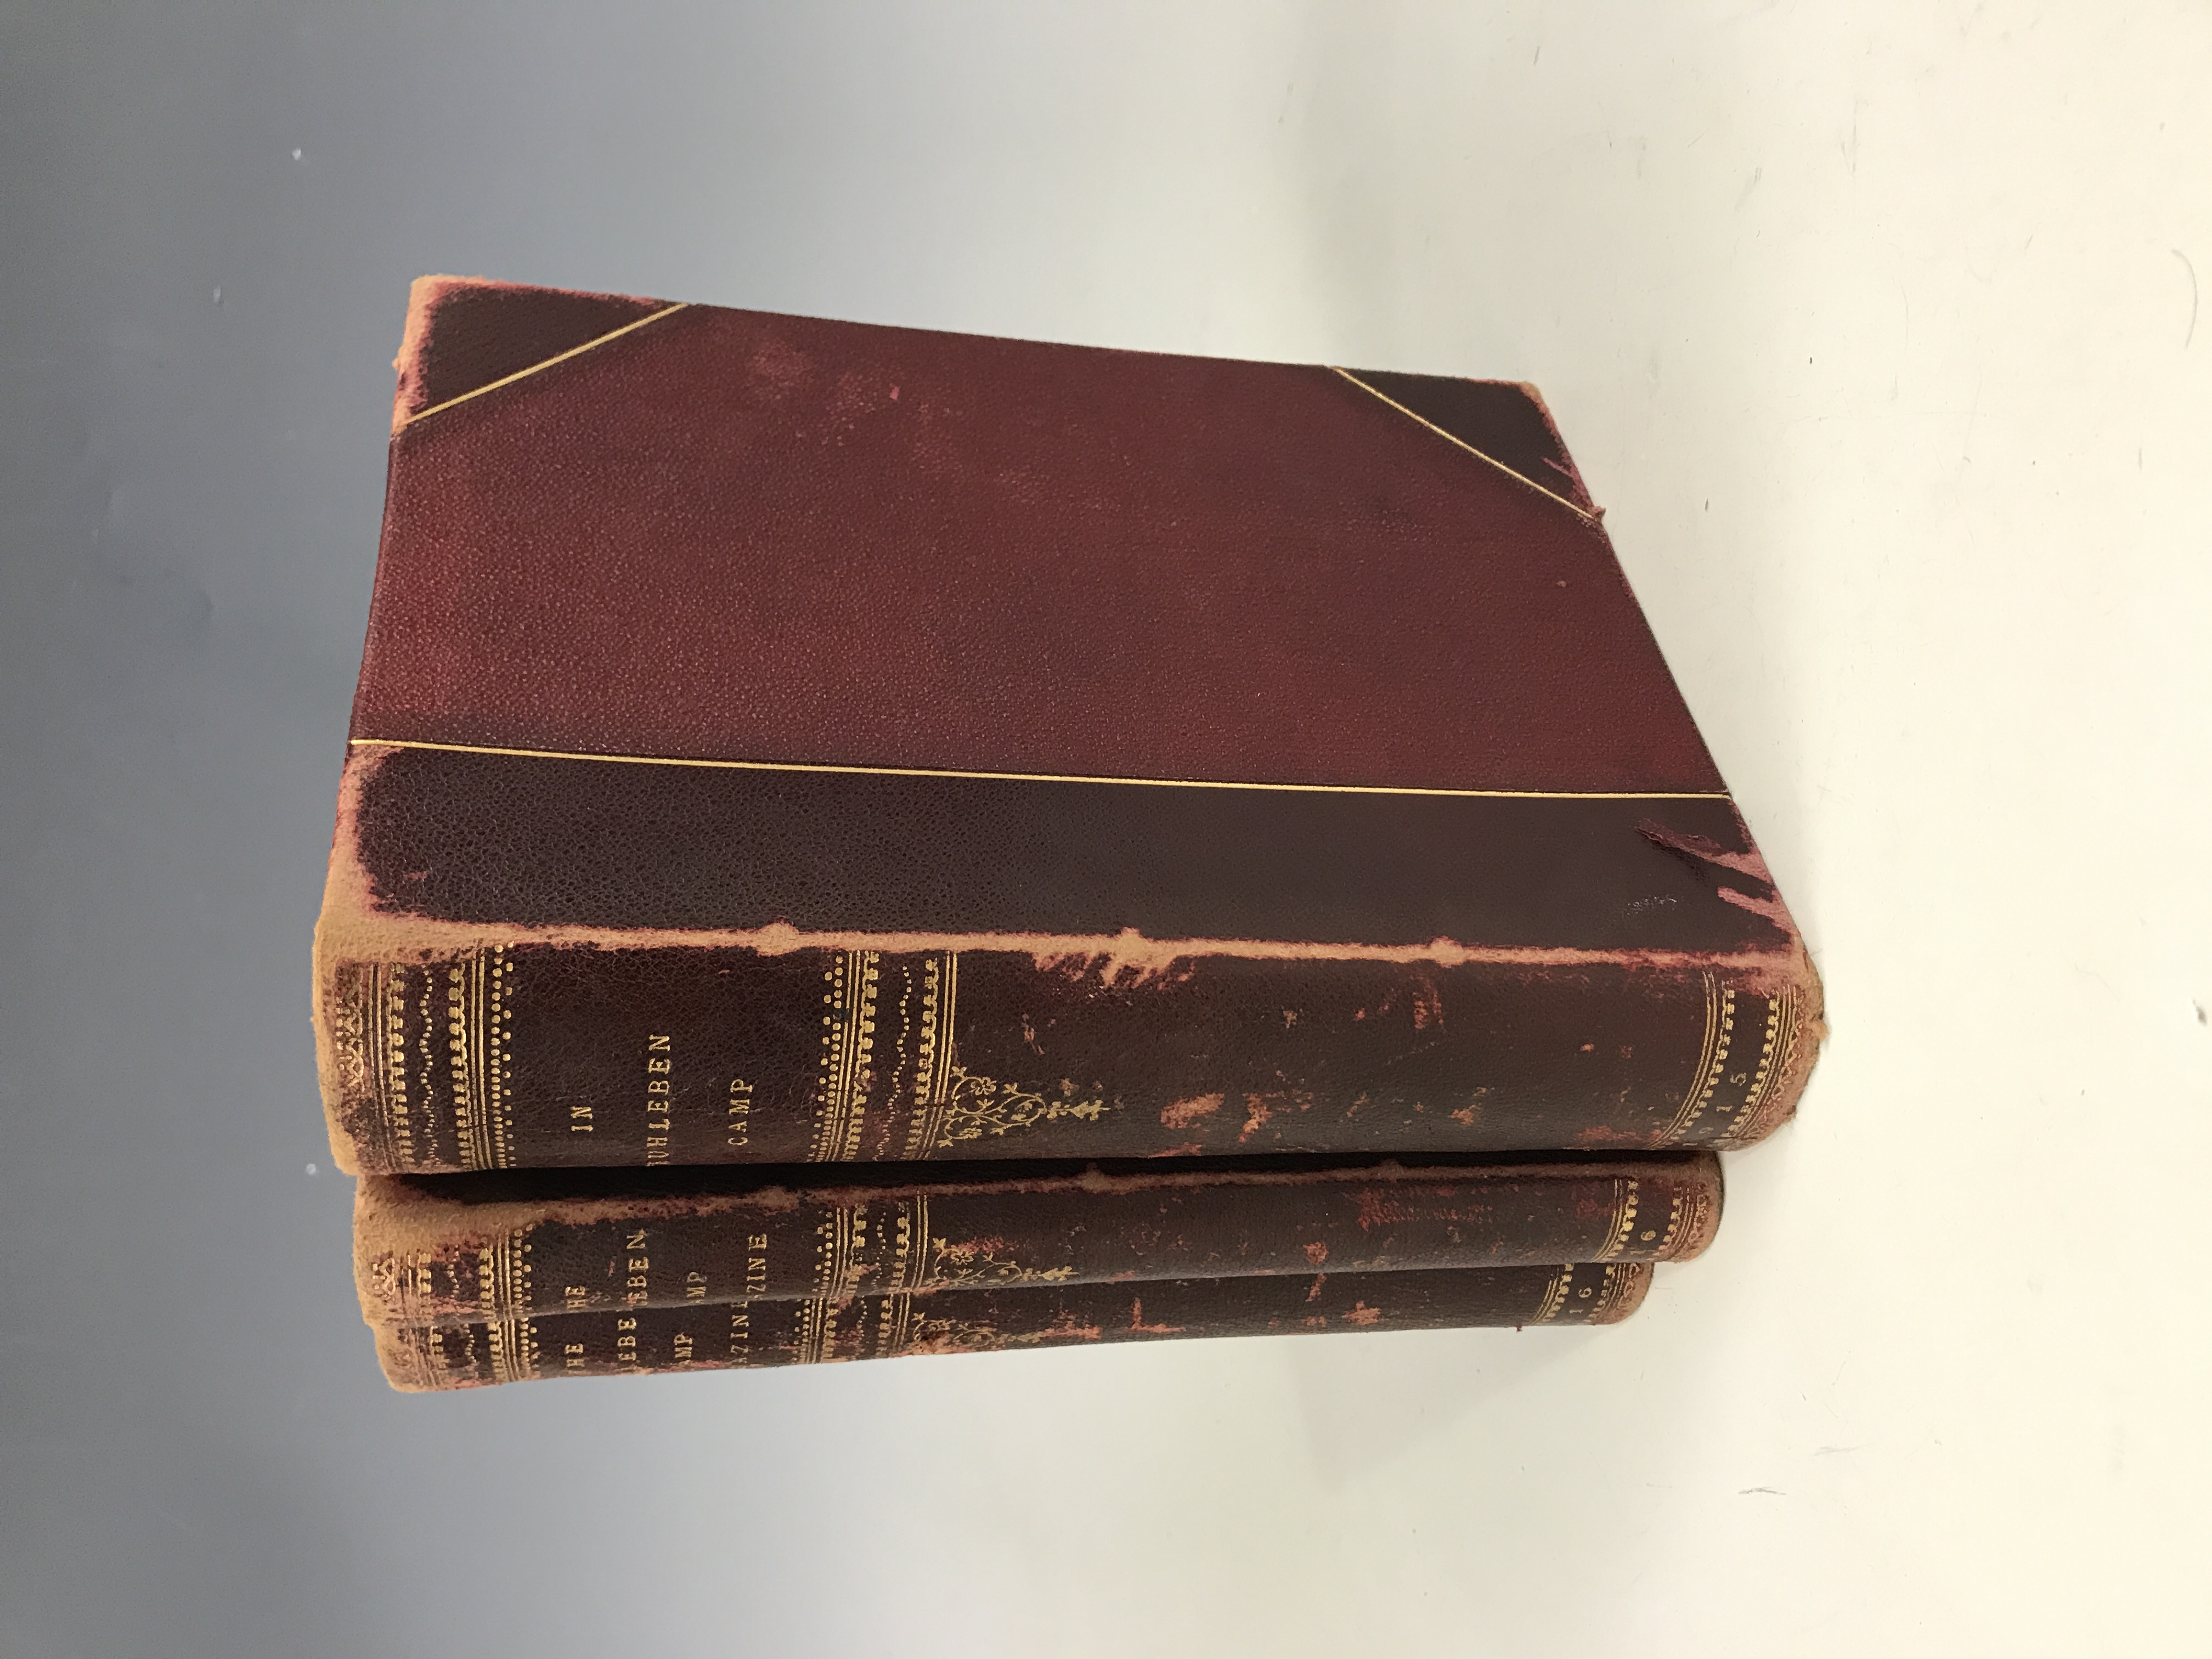 Lot 35 - Three bound runs of the Great War Prisoner of War / Internment Cap journal In Ruhleben Camp, 1915 to